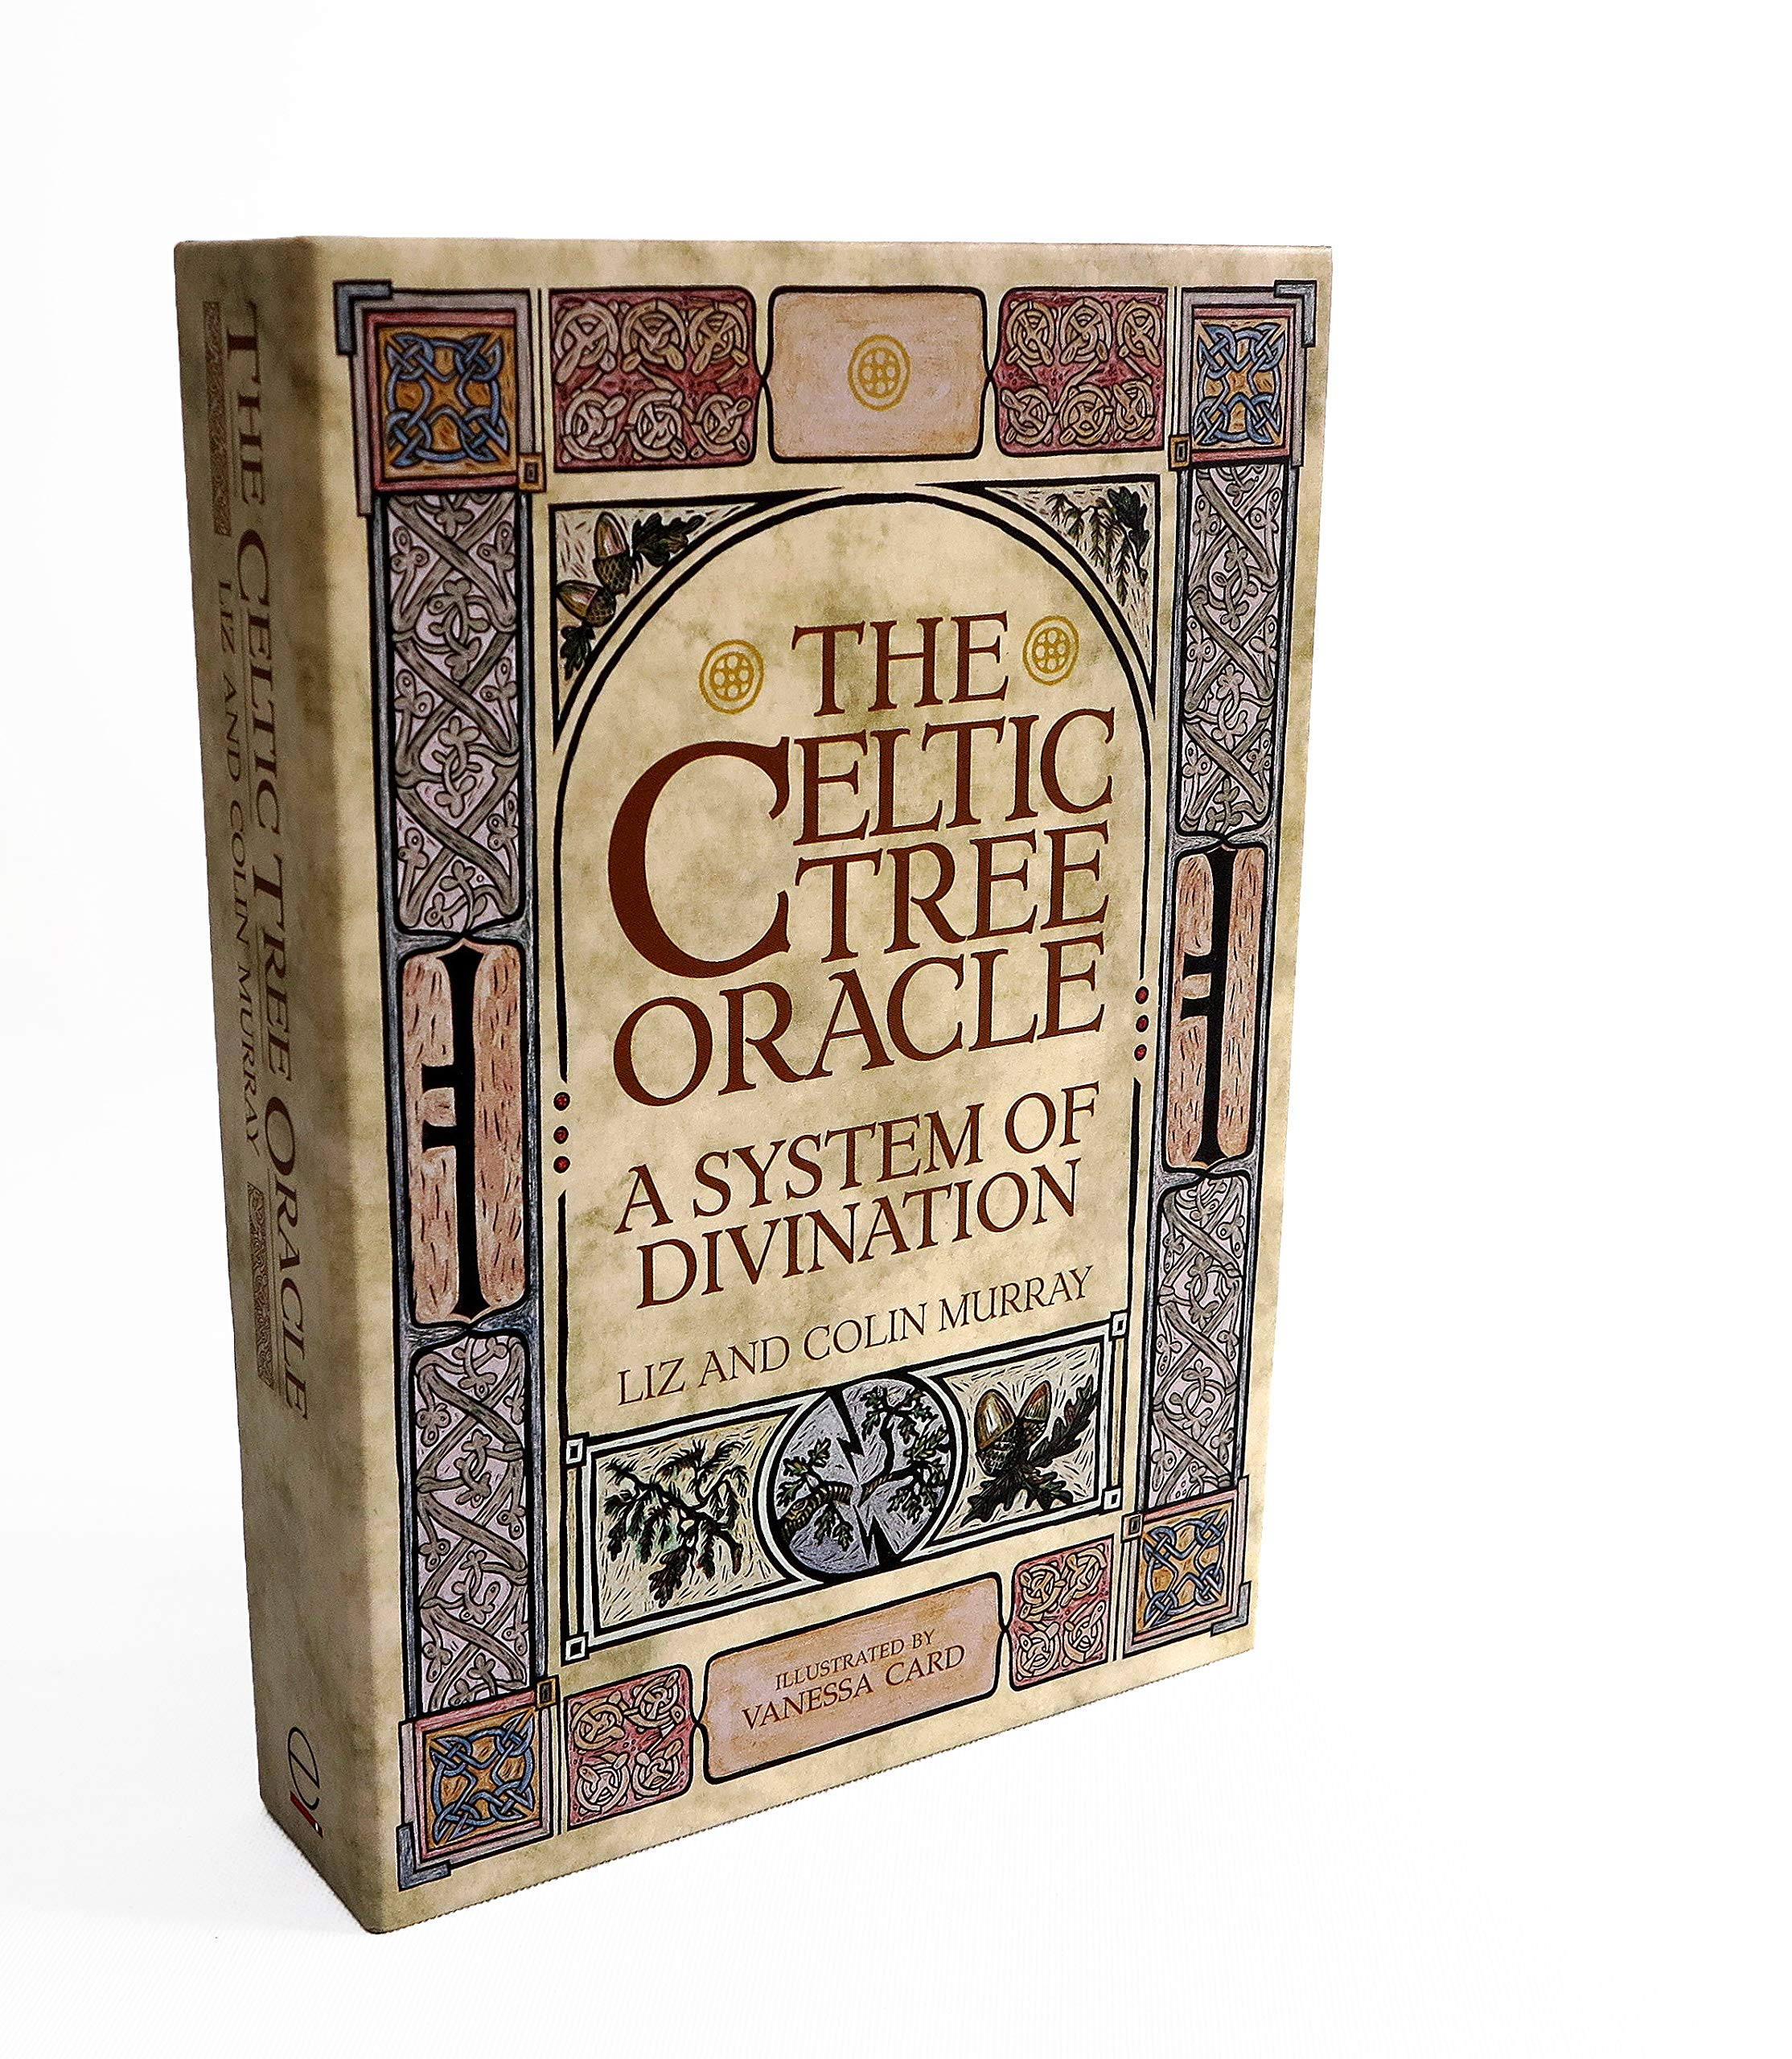 The Celtic Tree Oracle: A System of Divination (book, cards & record